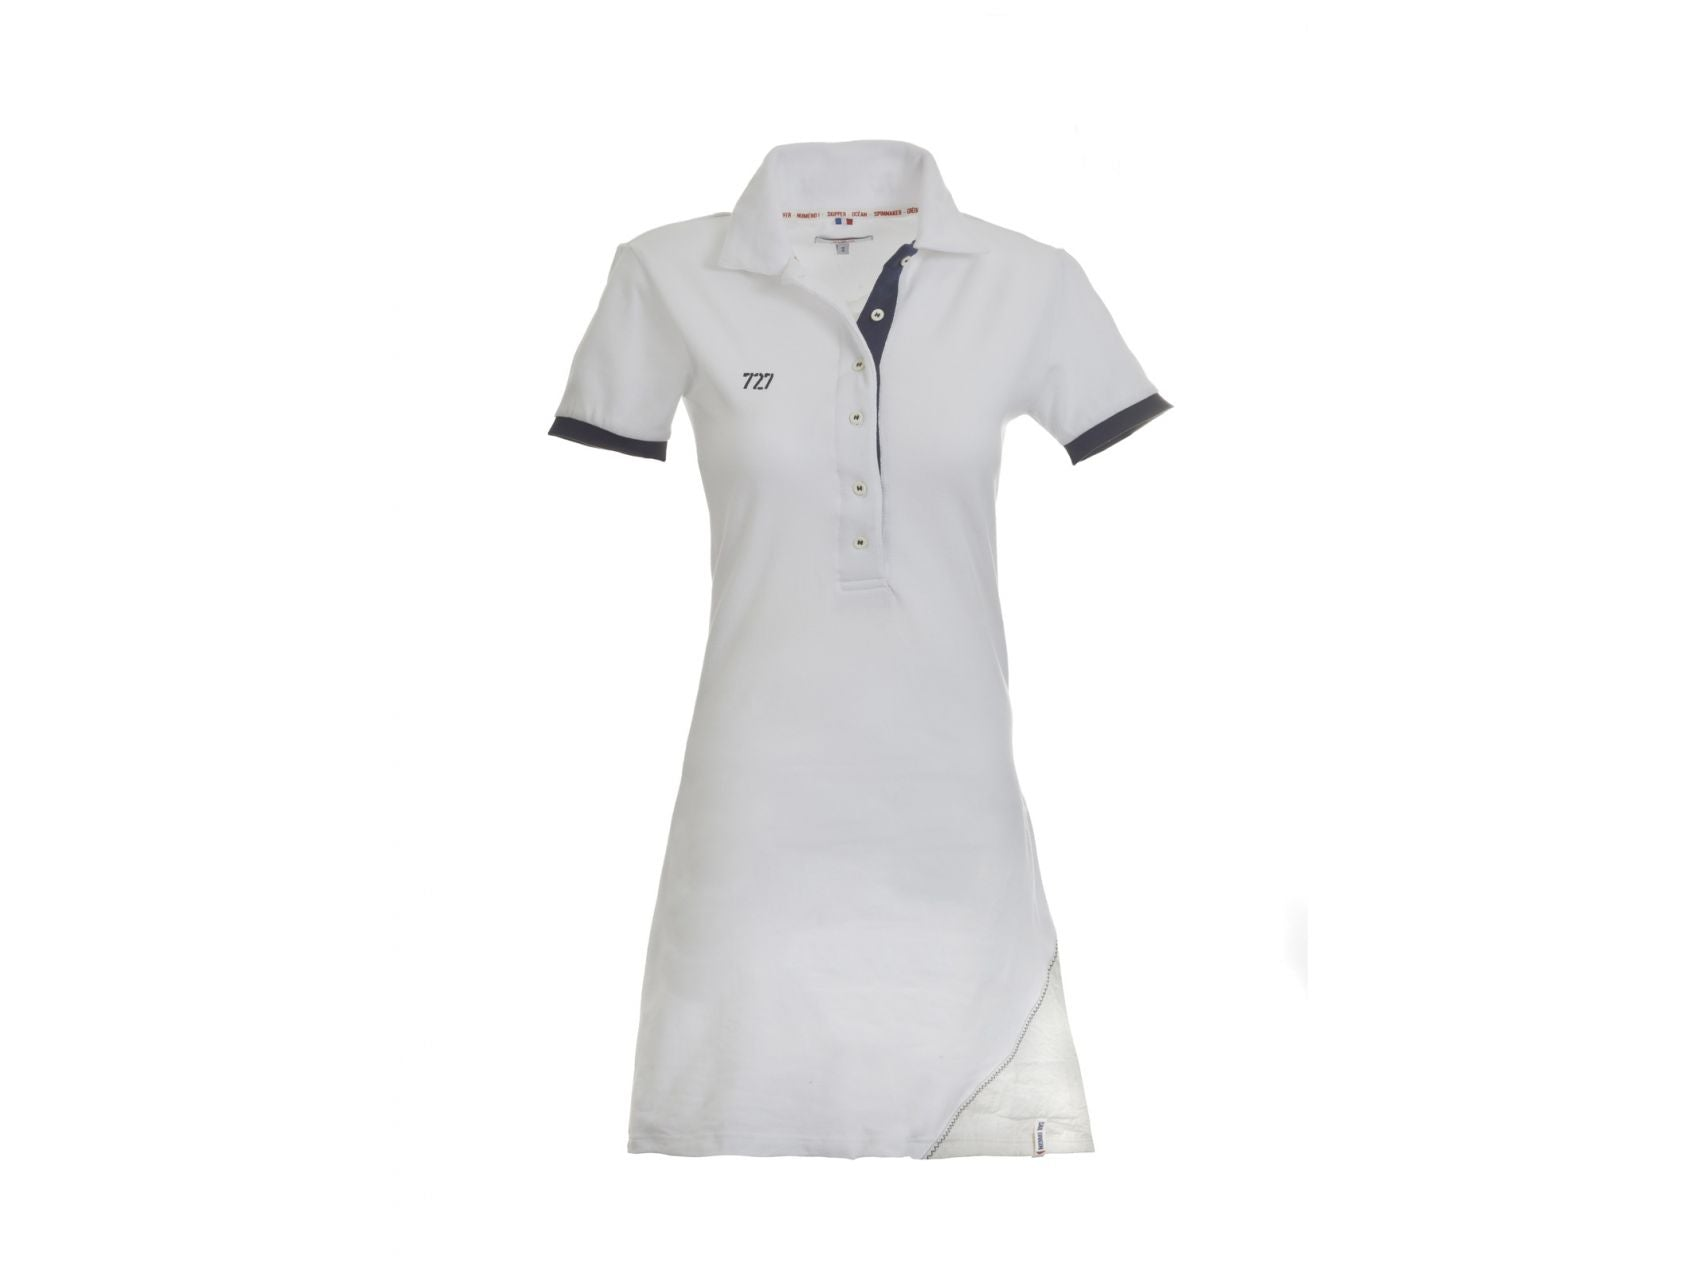 727 sailbags Polo dress